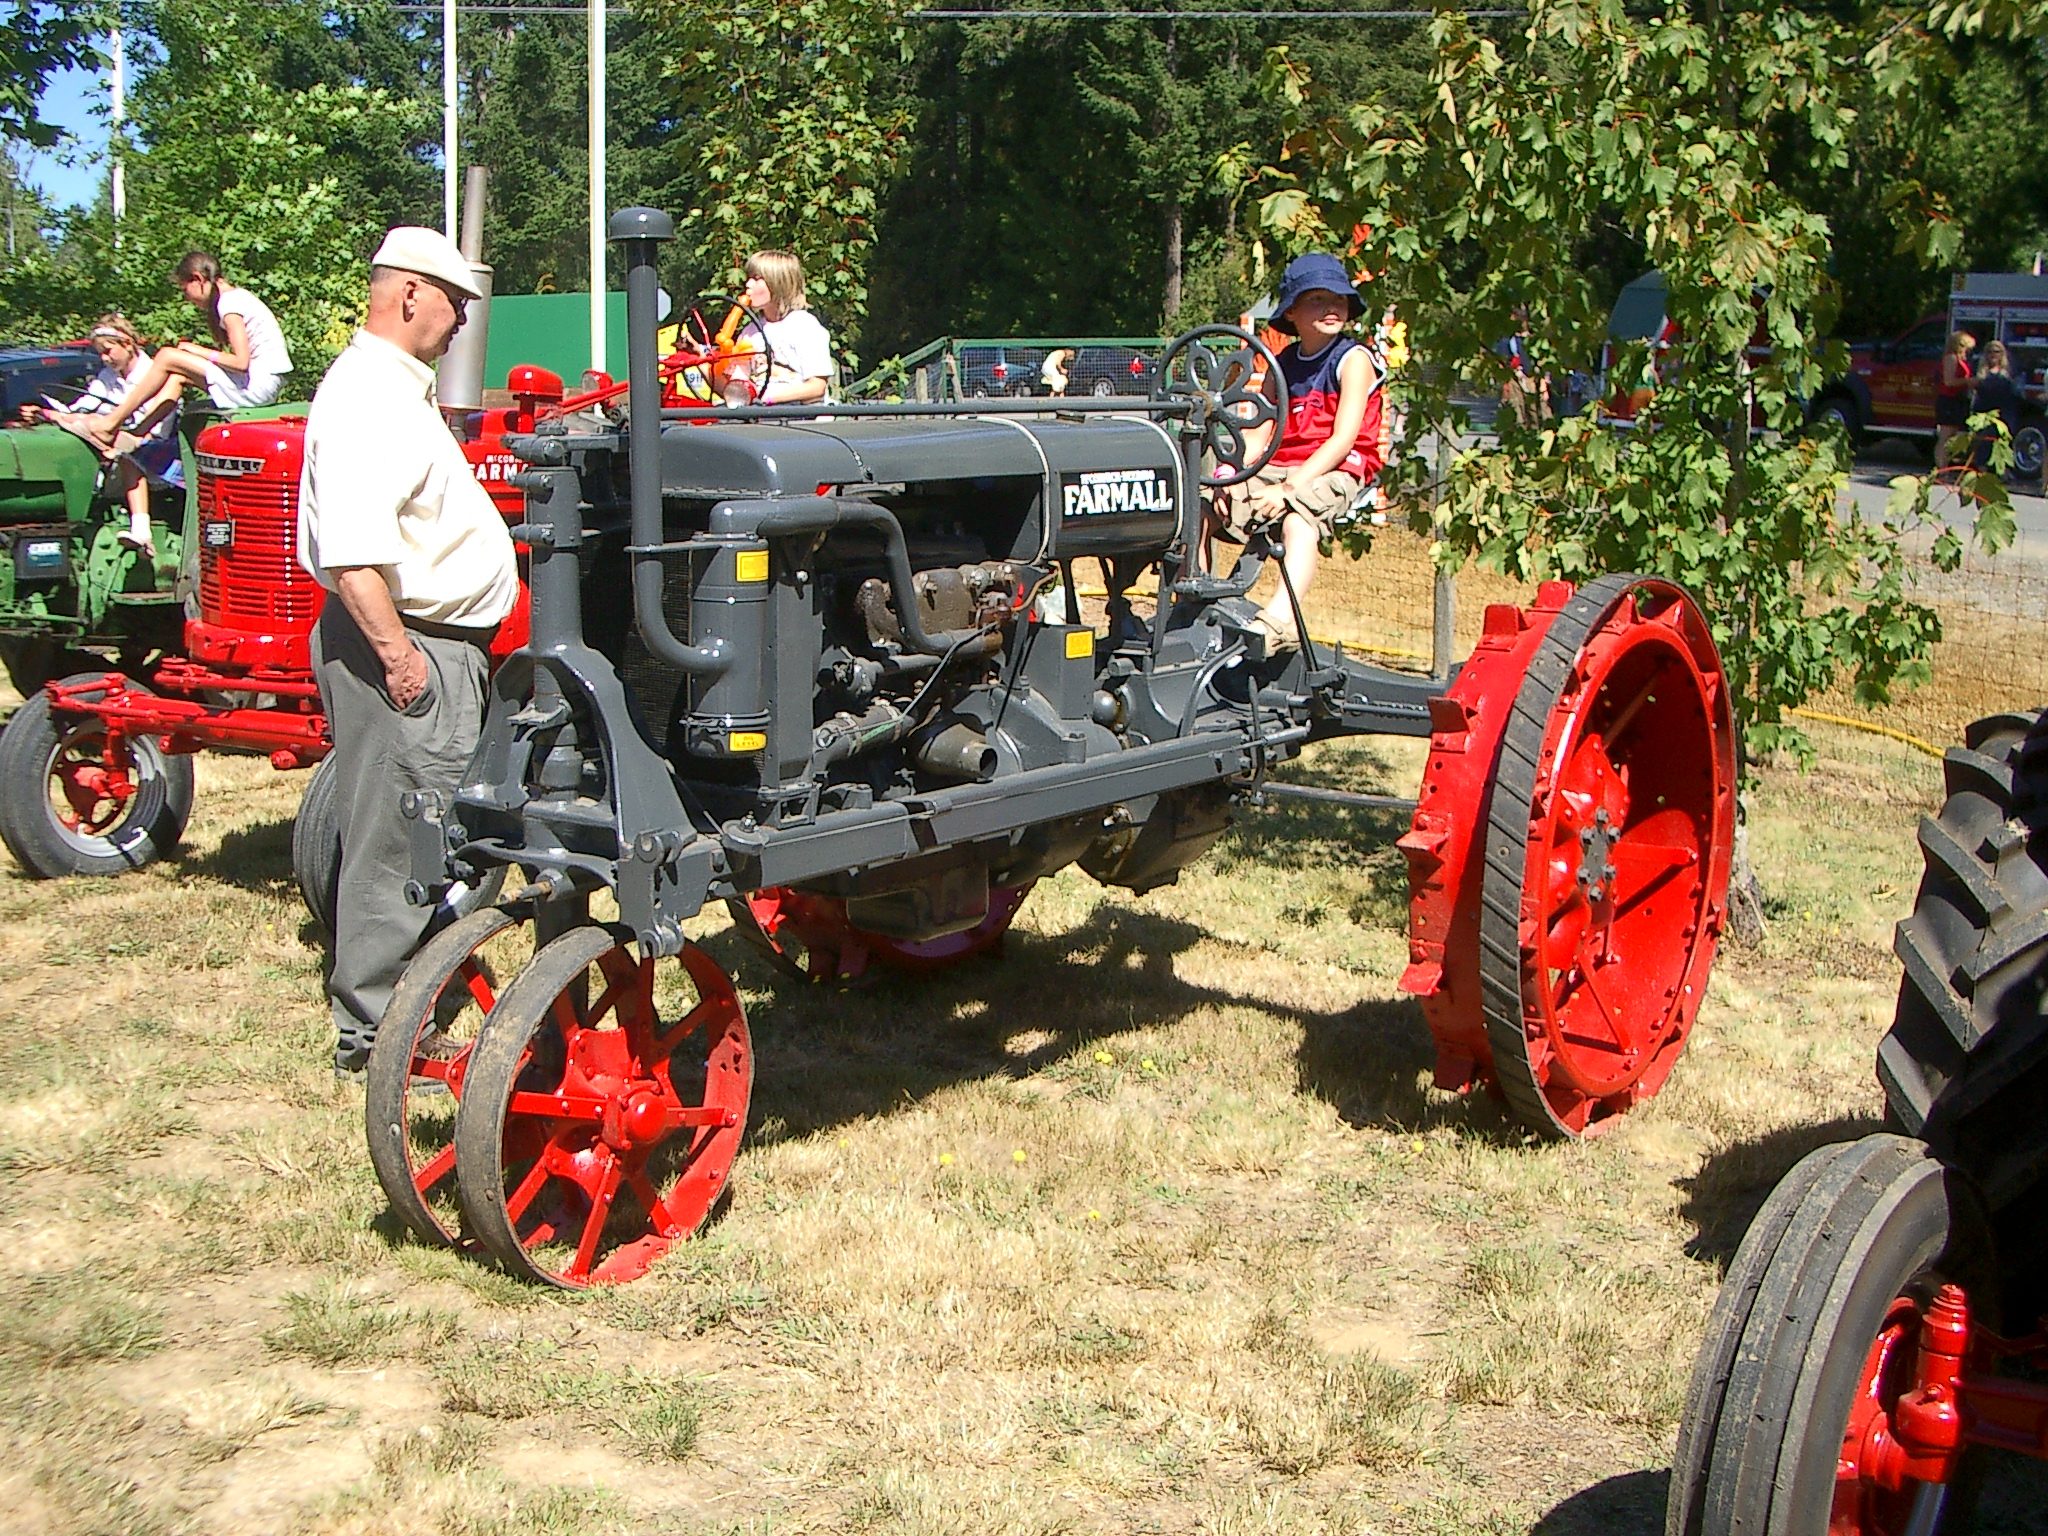 farmall wikipedia Agco Allis Wiring Diagram